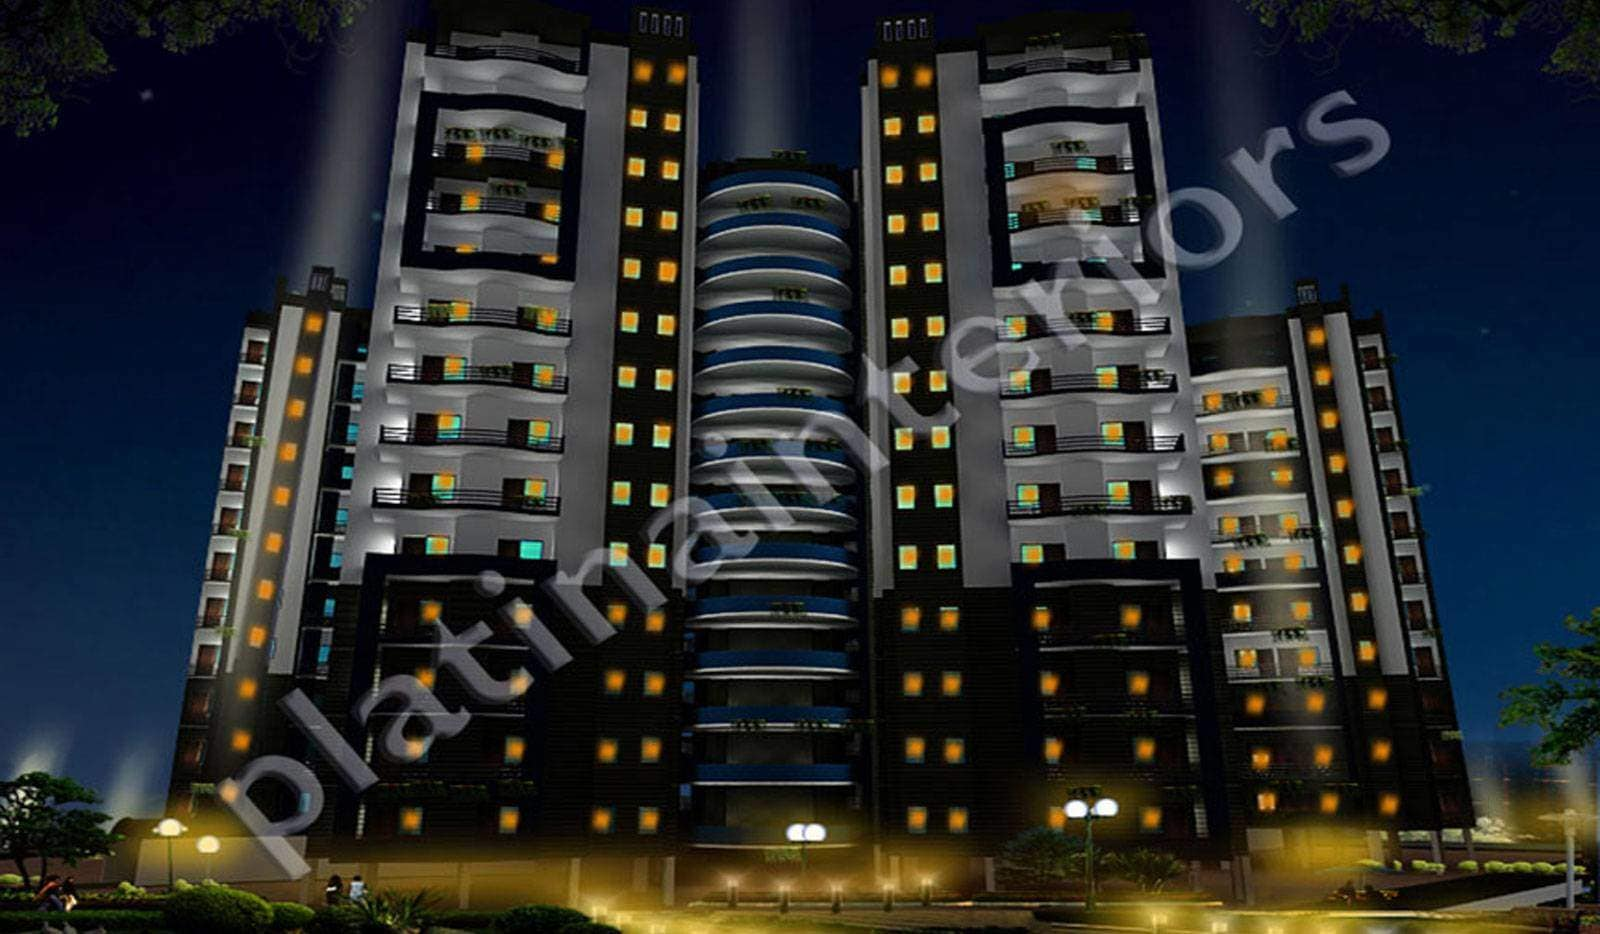 Top 20 architectural work in noida sector 16 delhi justdial